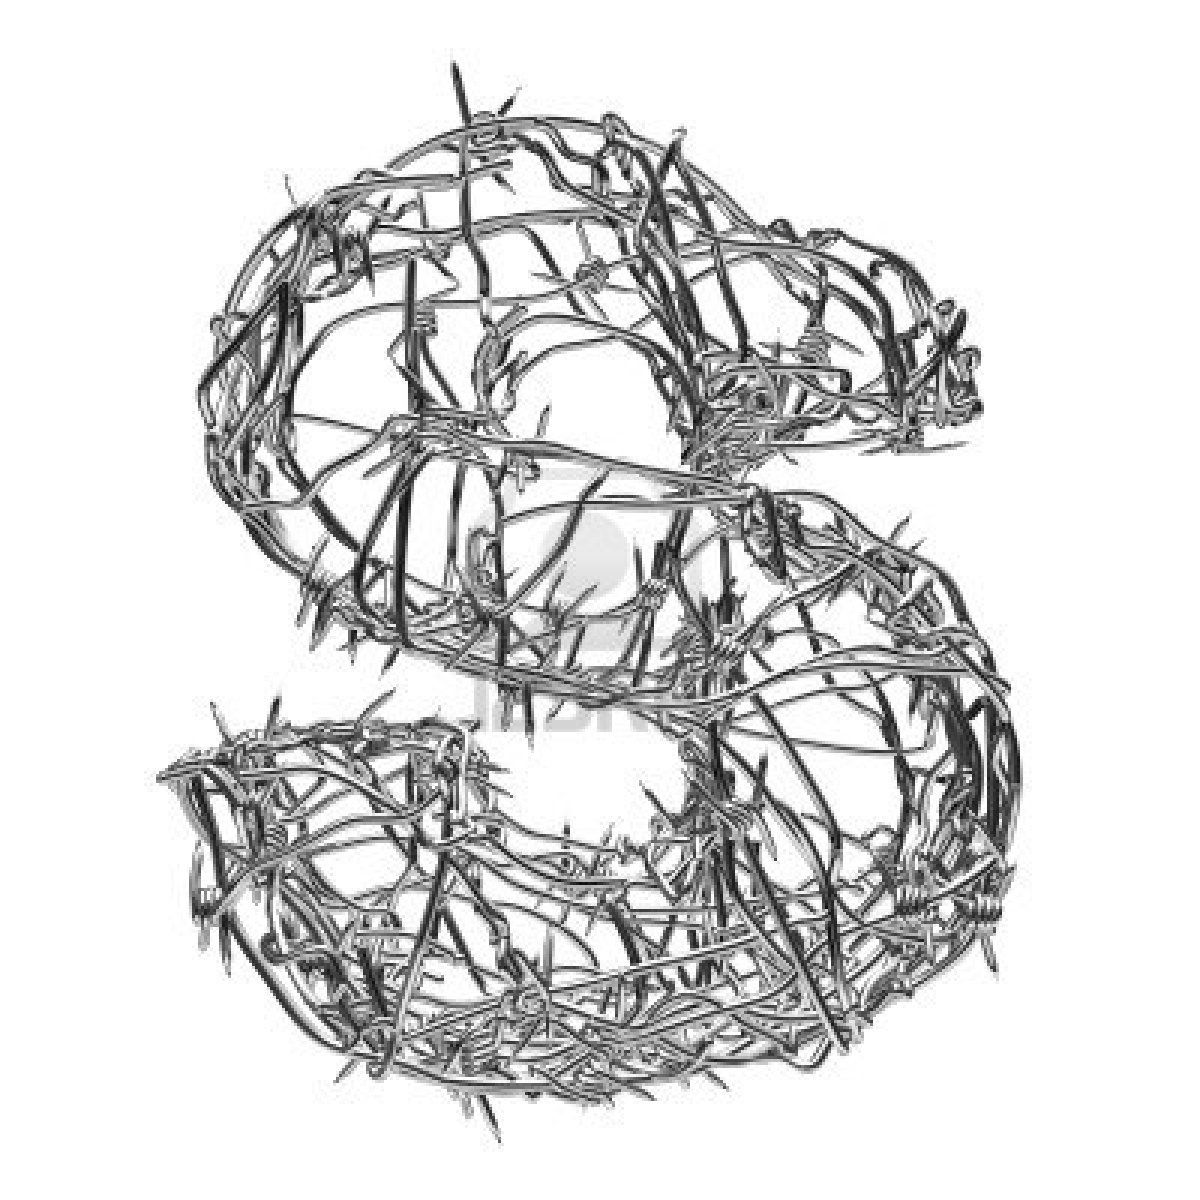 Fantastic Barbed Wire Letters Composition - Wiring Schematics and ...